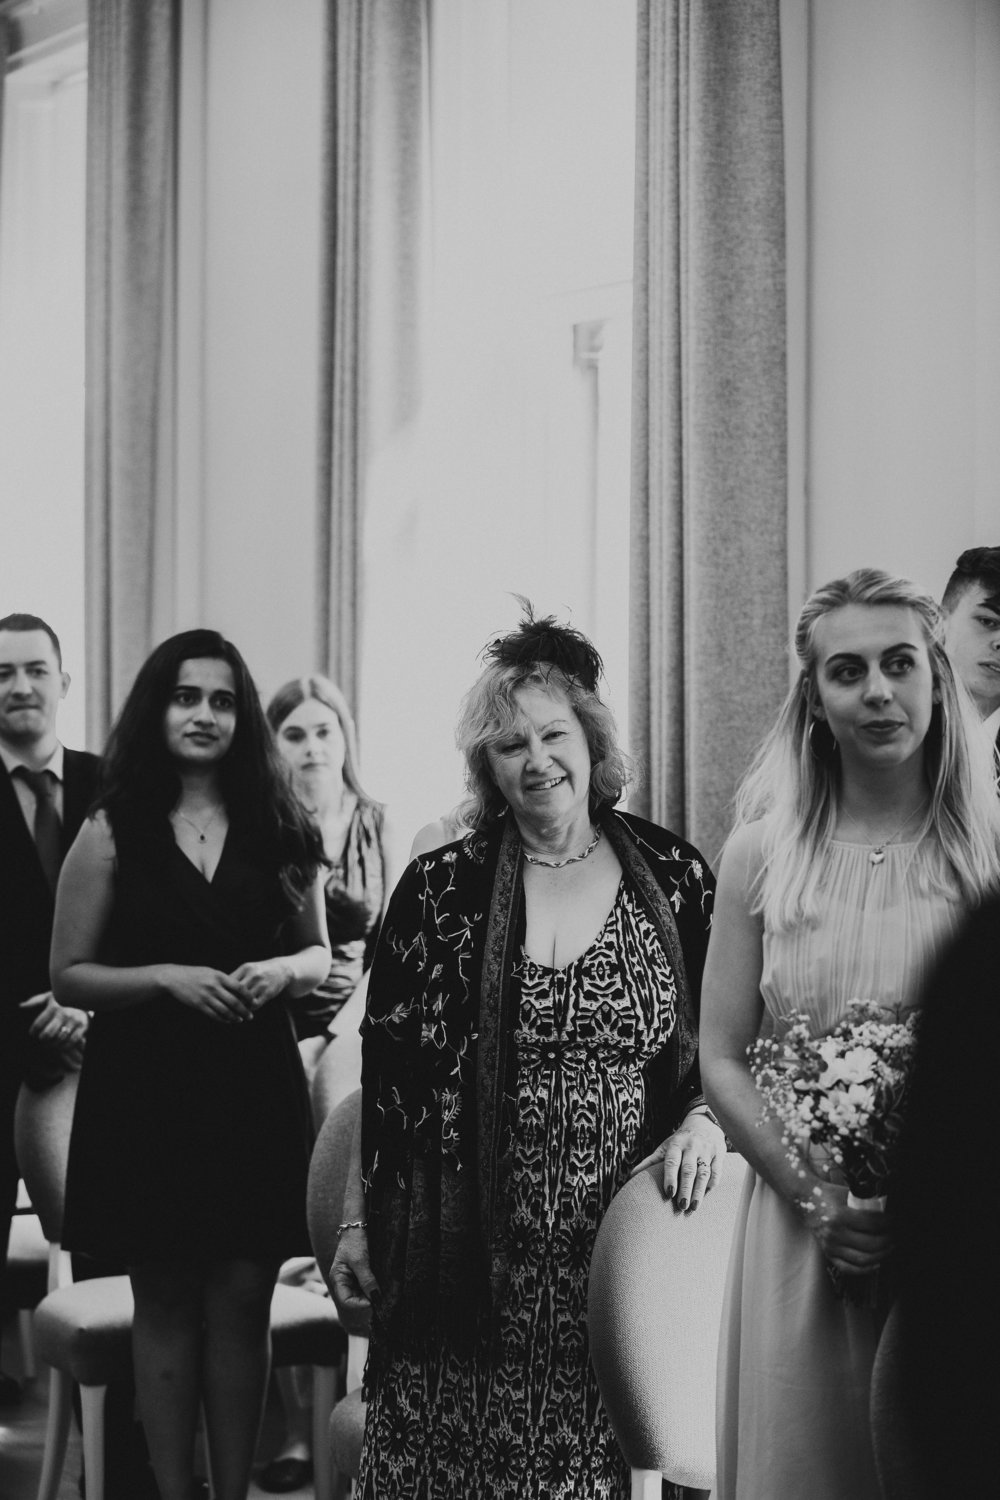 ALTERNATIVE_GLASGOW_CITY_WEDDING_PJ_PHILLIPS_PHOTOGRAPHY_WEDDING_PHOTOGRAPHY_48.jpg